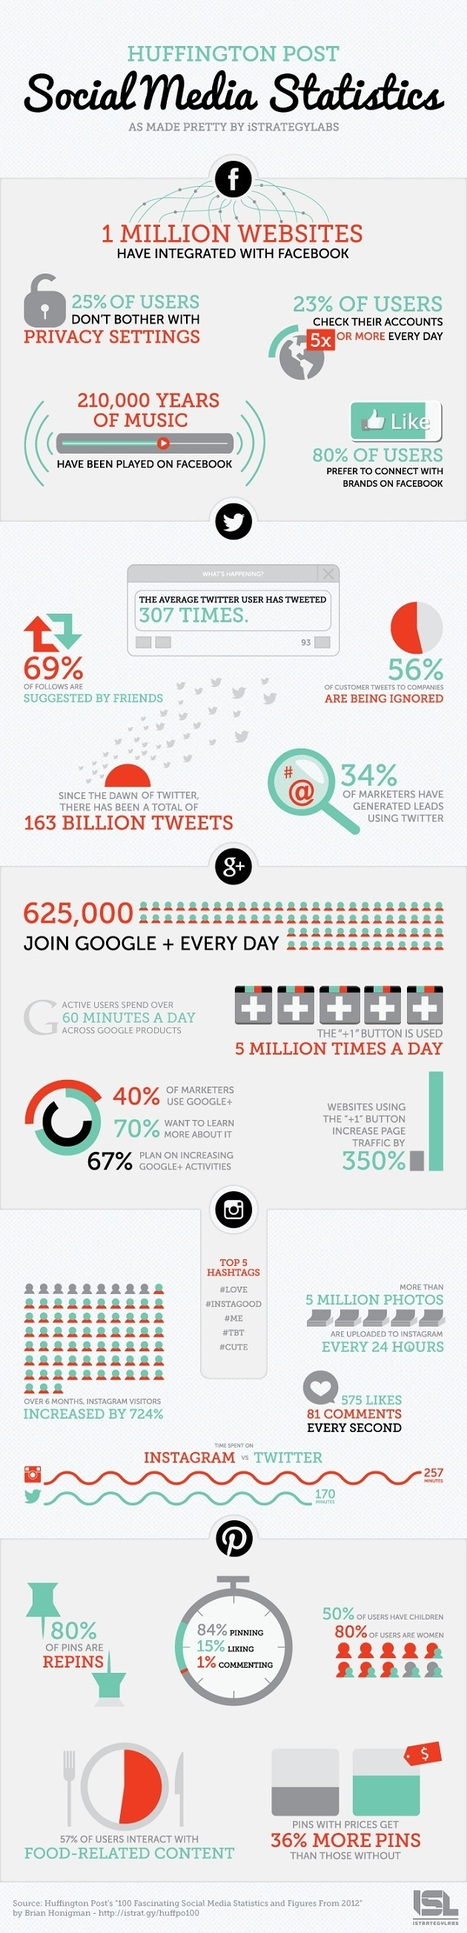 Infographic: 365 Days of Social Media | DV8 Digital Marketing Tips and Insight | Scoop.it